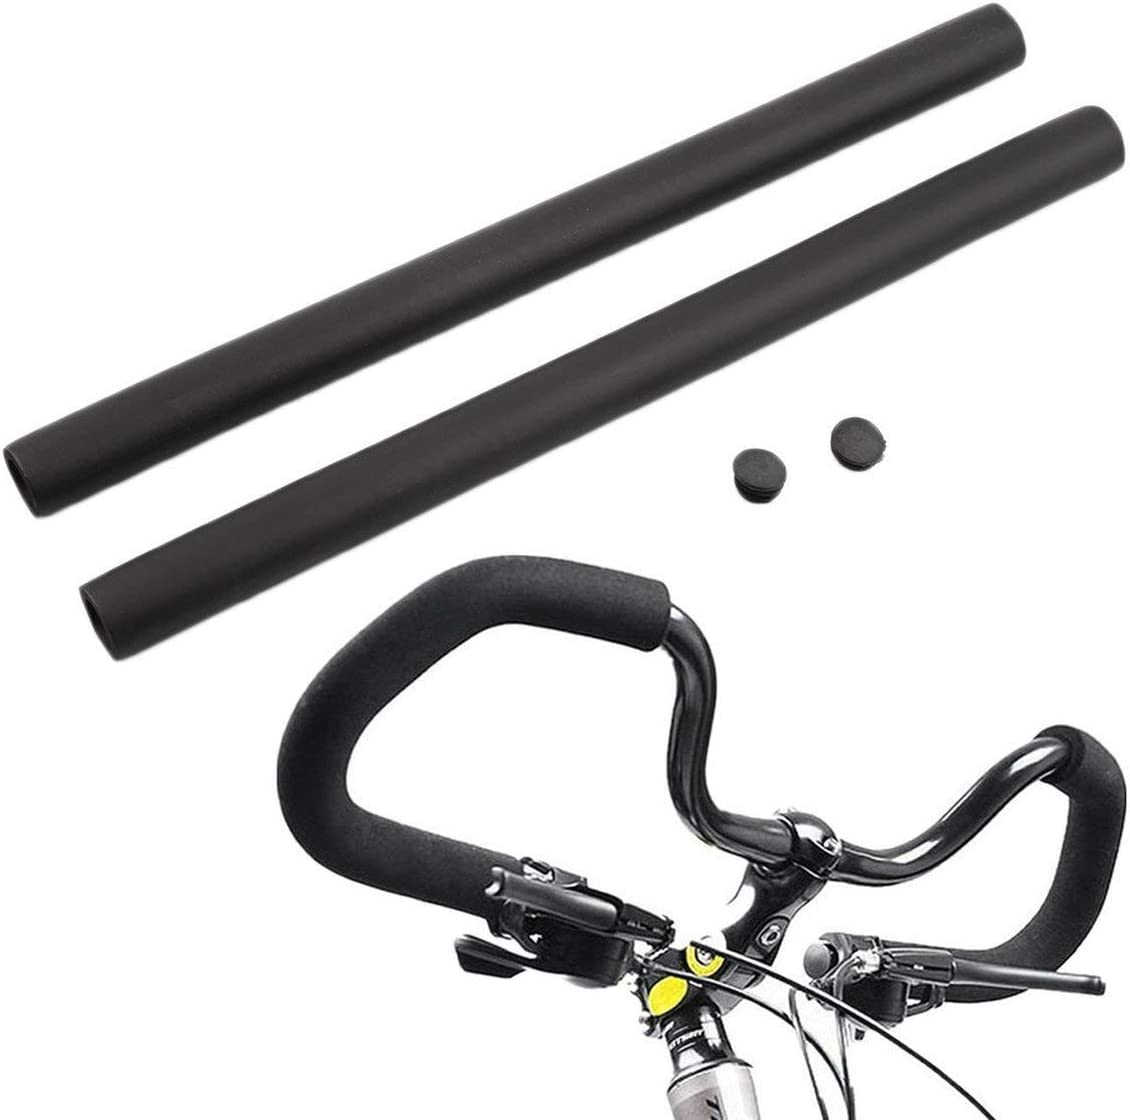 2Pcs Bycicle Handle Bar Grips Bike Cycle Soft Soft Protection Cycling Equipment